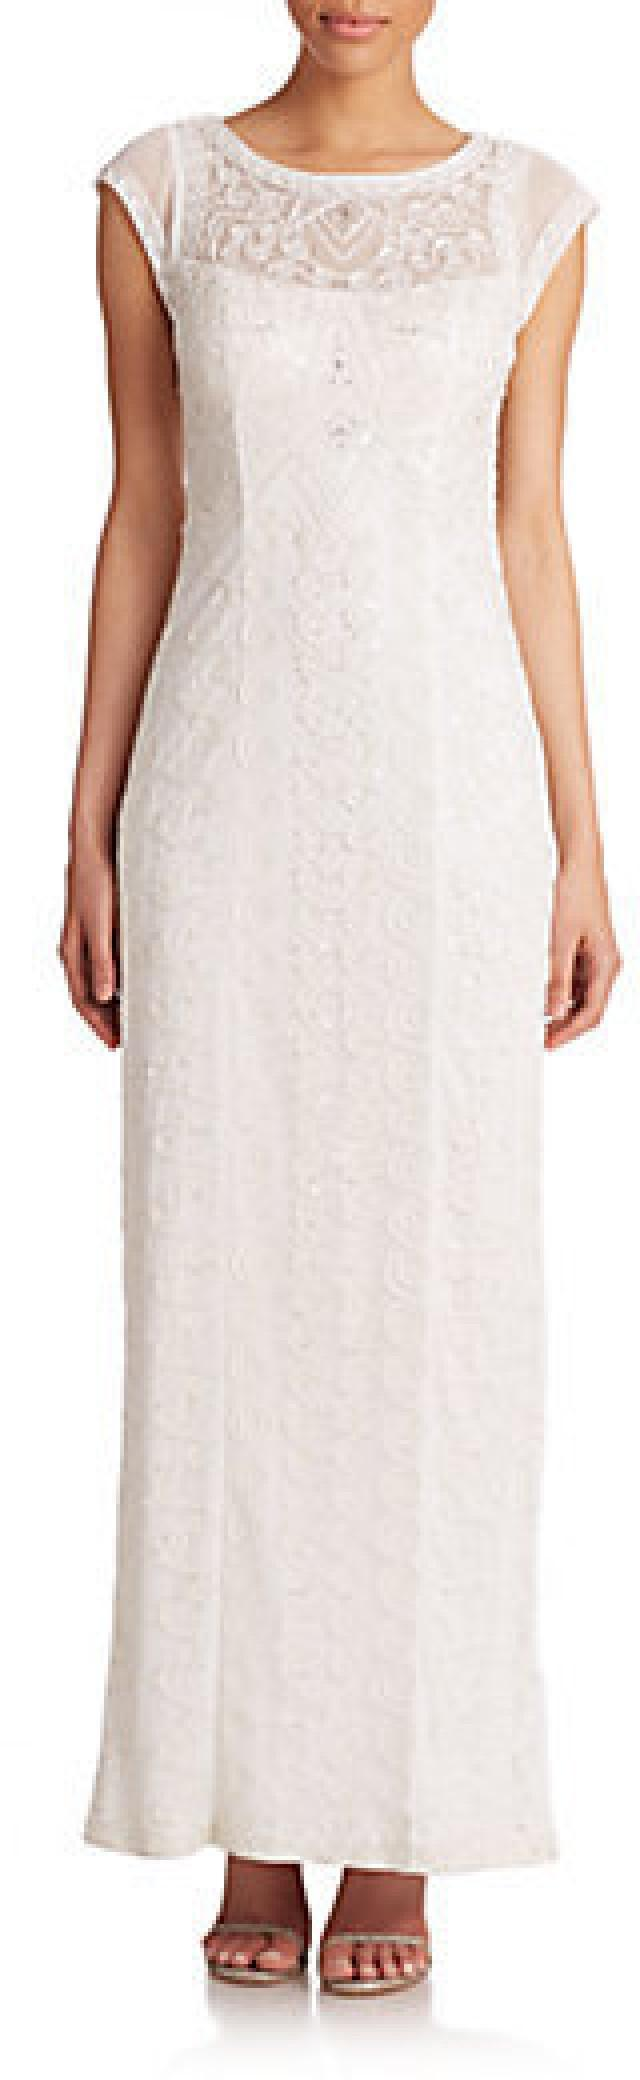 Sue wong embroidered cap sleeve gown 2364655 weddbook for Sue wong robes de mariage